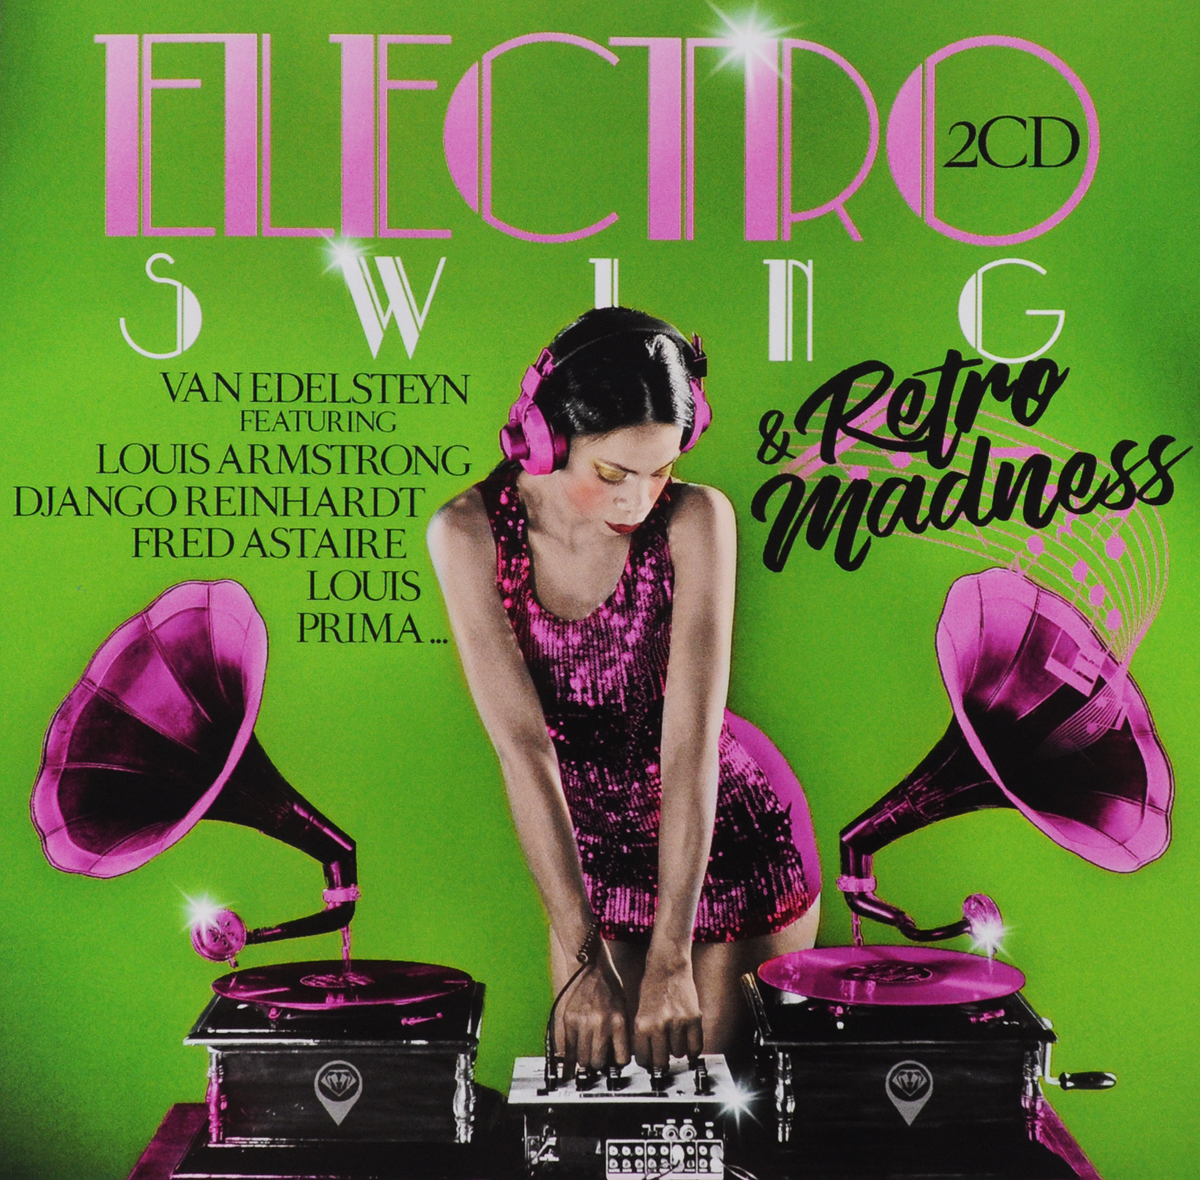 Electro Swing & Retro Madness. Van Edelsteyn (2 CD)